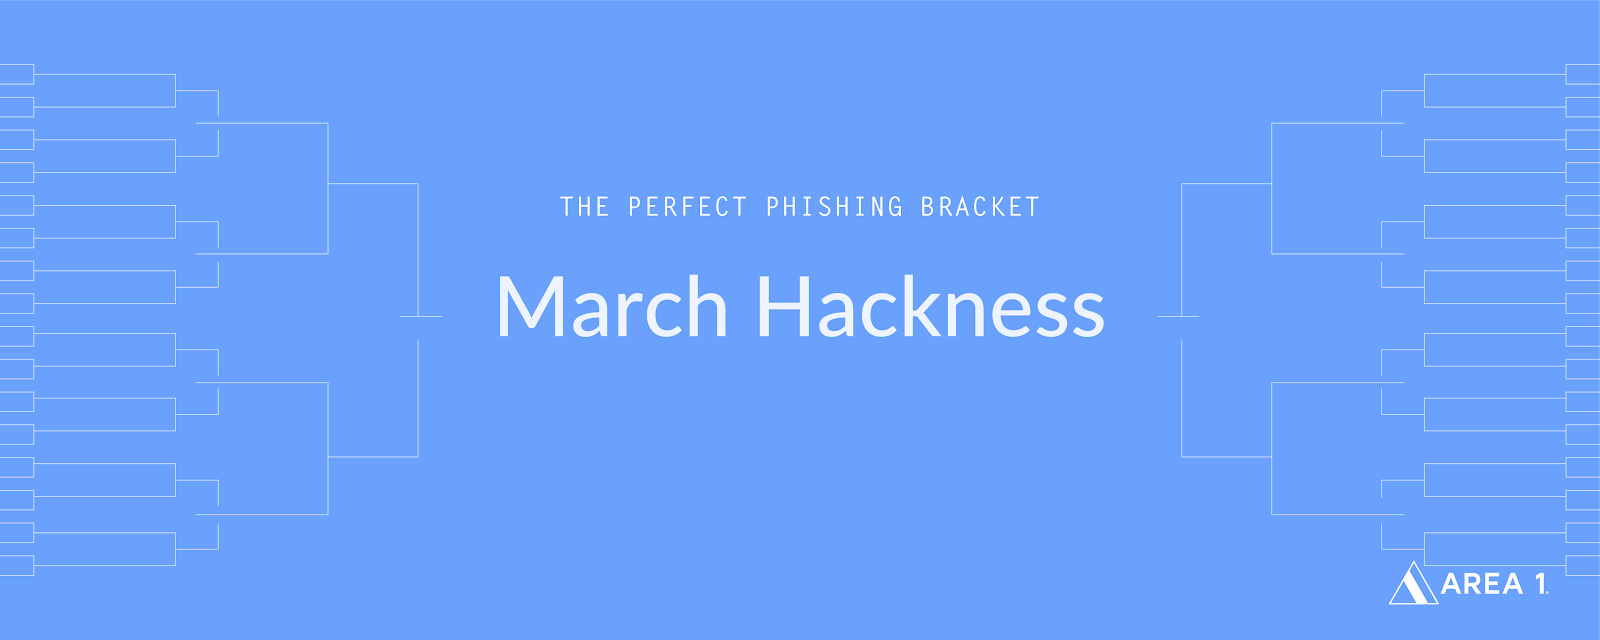 March Hackness- Phishing Bracket